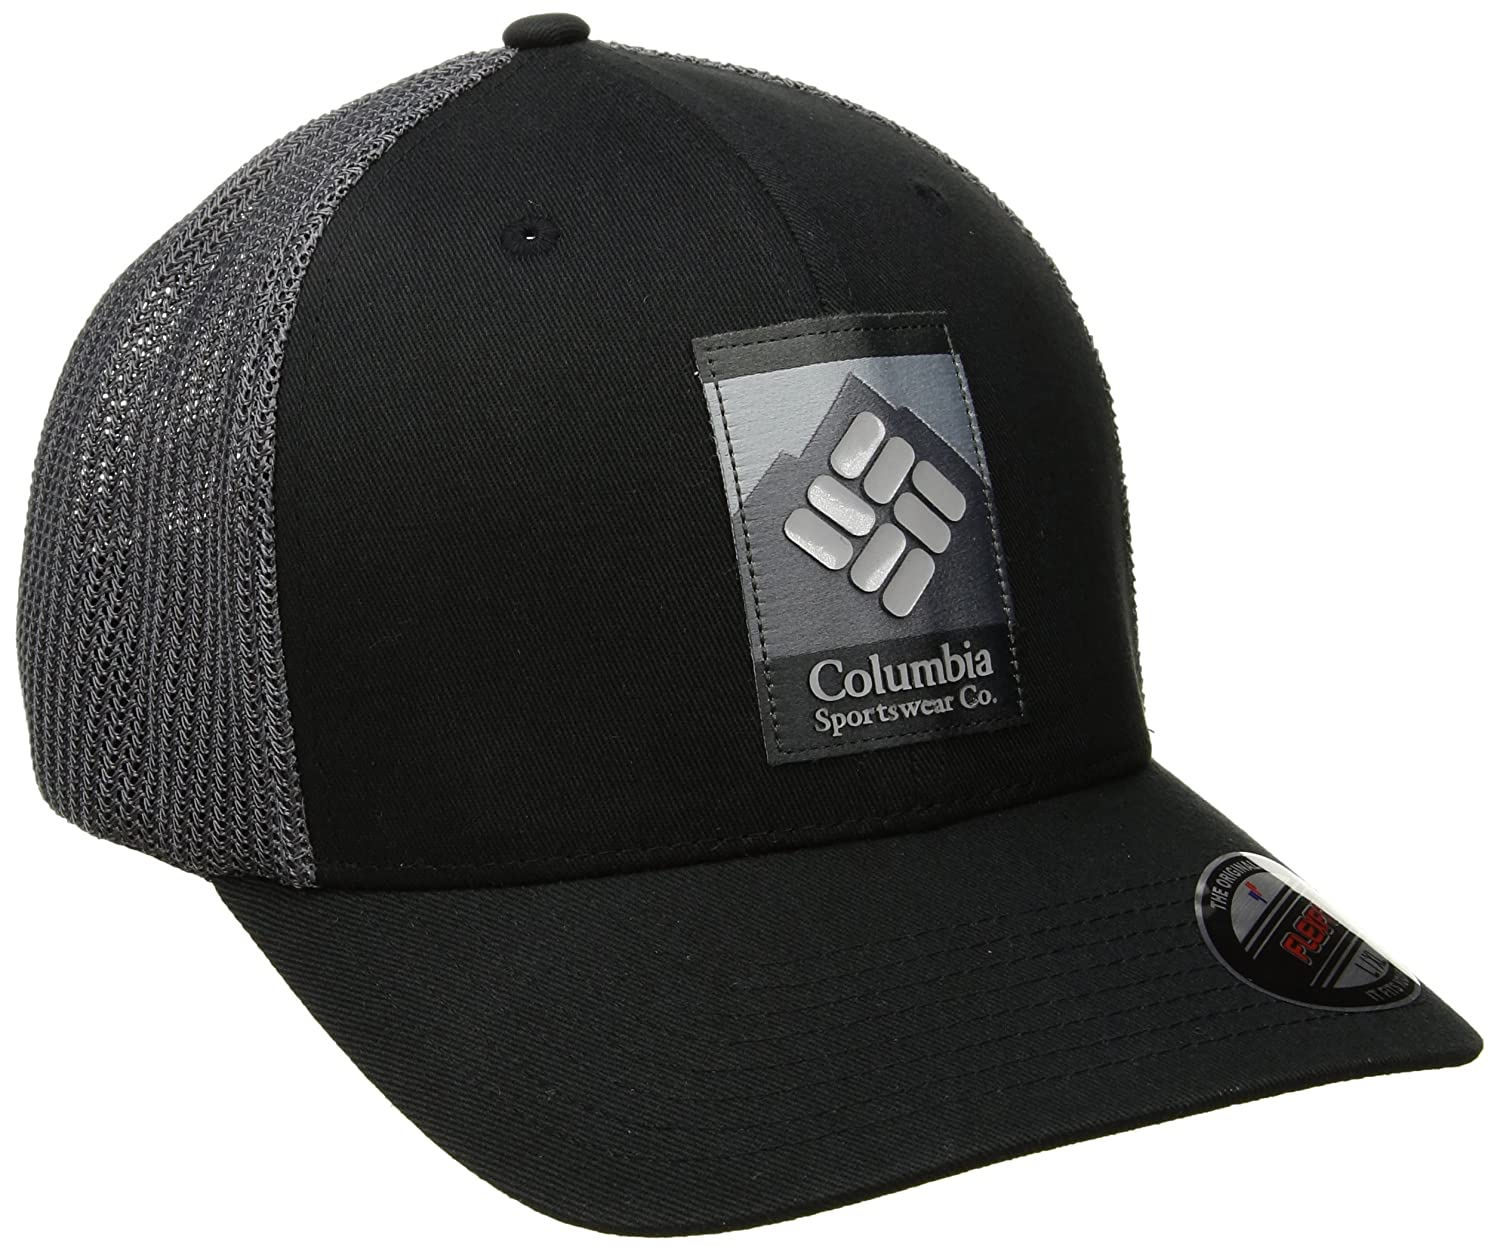 f5273c4f56fd56 Unisex Columbia Mesh Ballcap at Amazon Men's Clothing store: